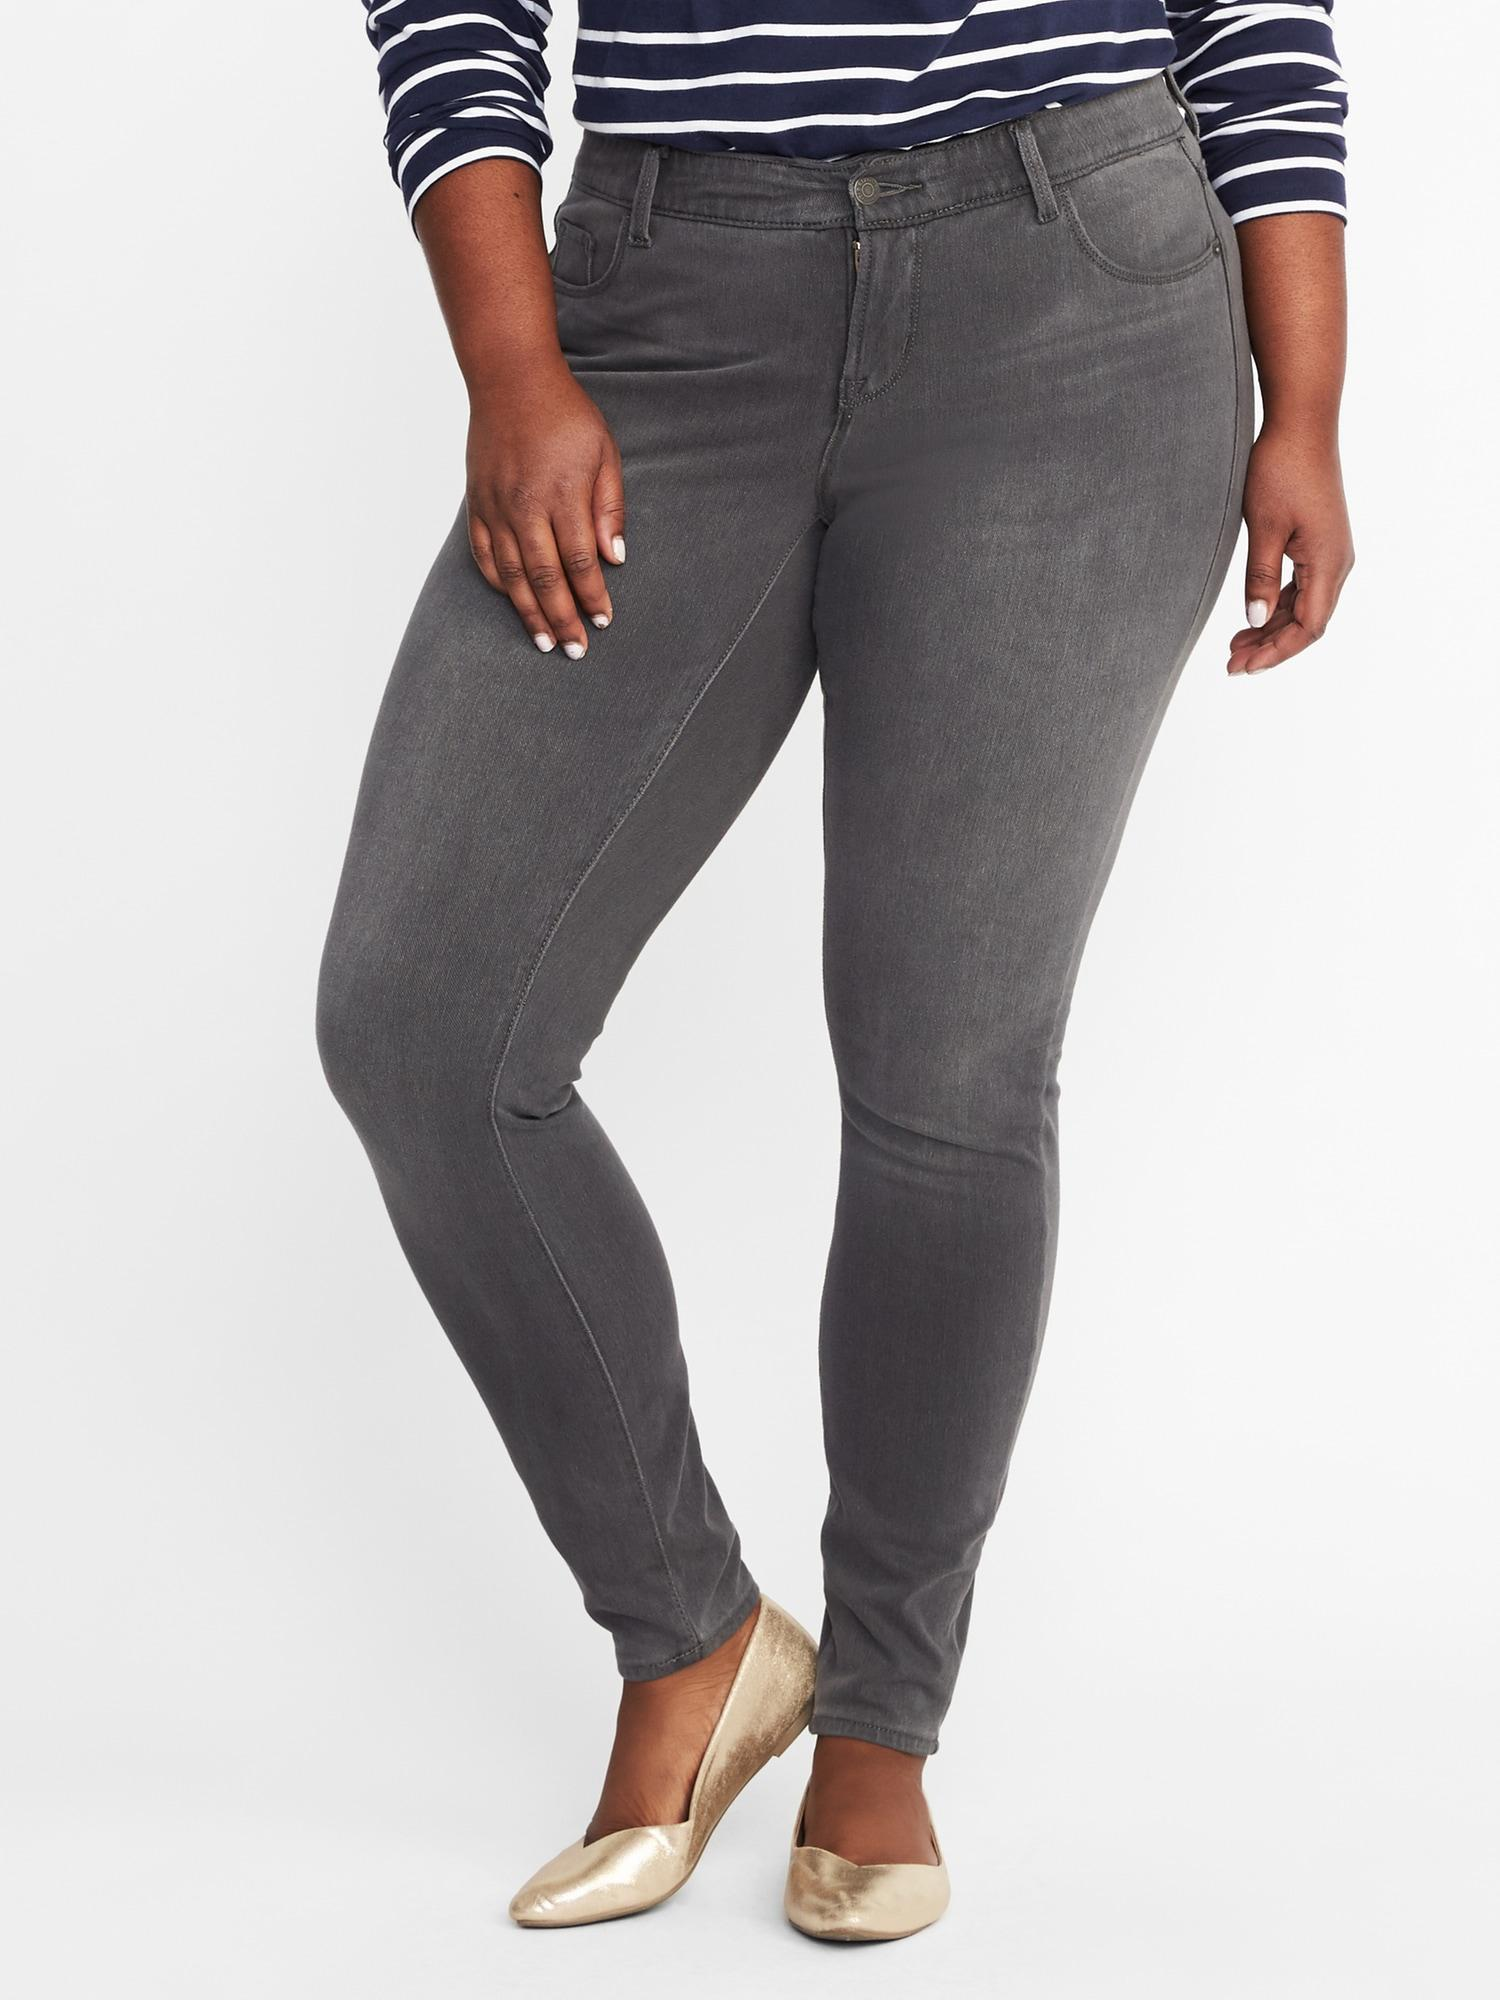 08367d1934f Lyst - Old Navy High-rise Secret-slim Pockets + Waistband Plus-size ...